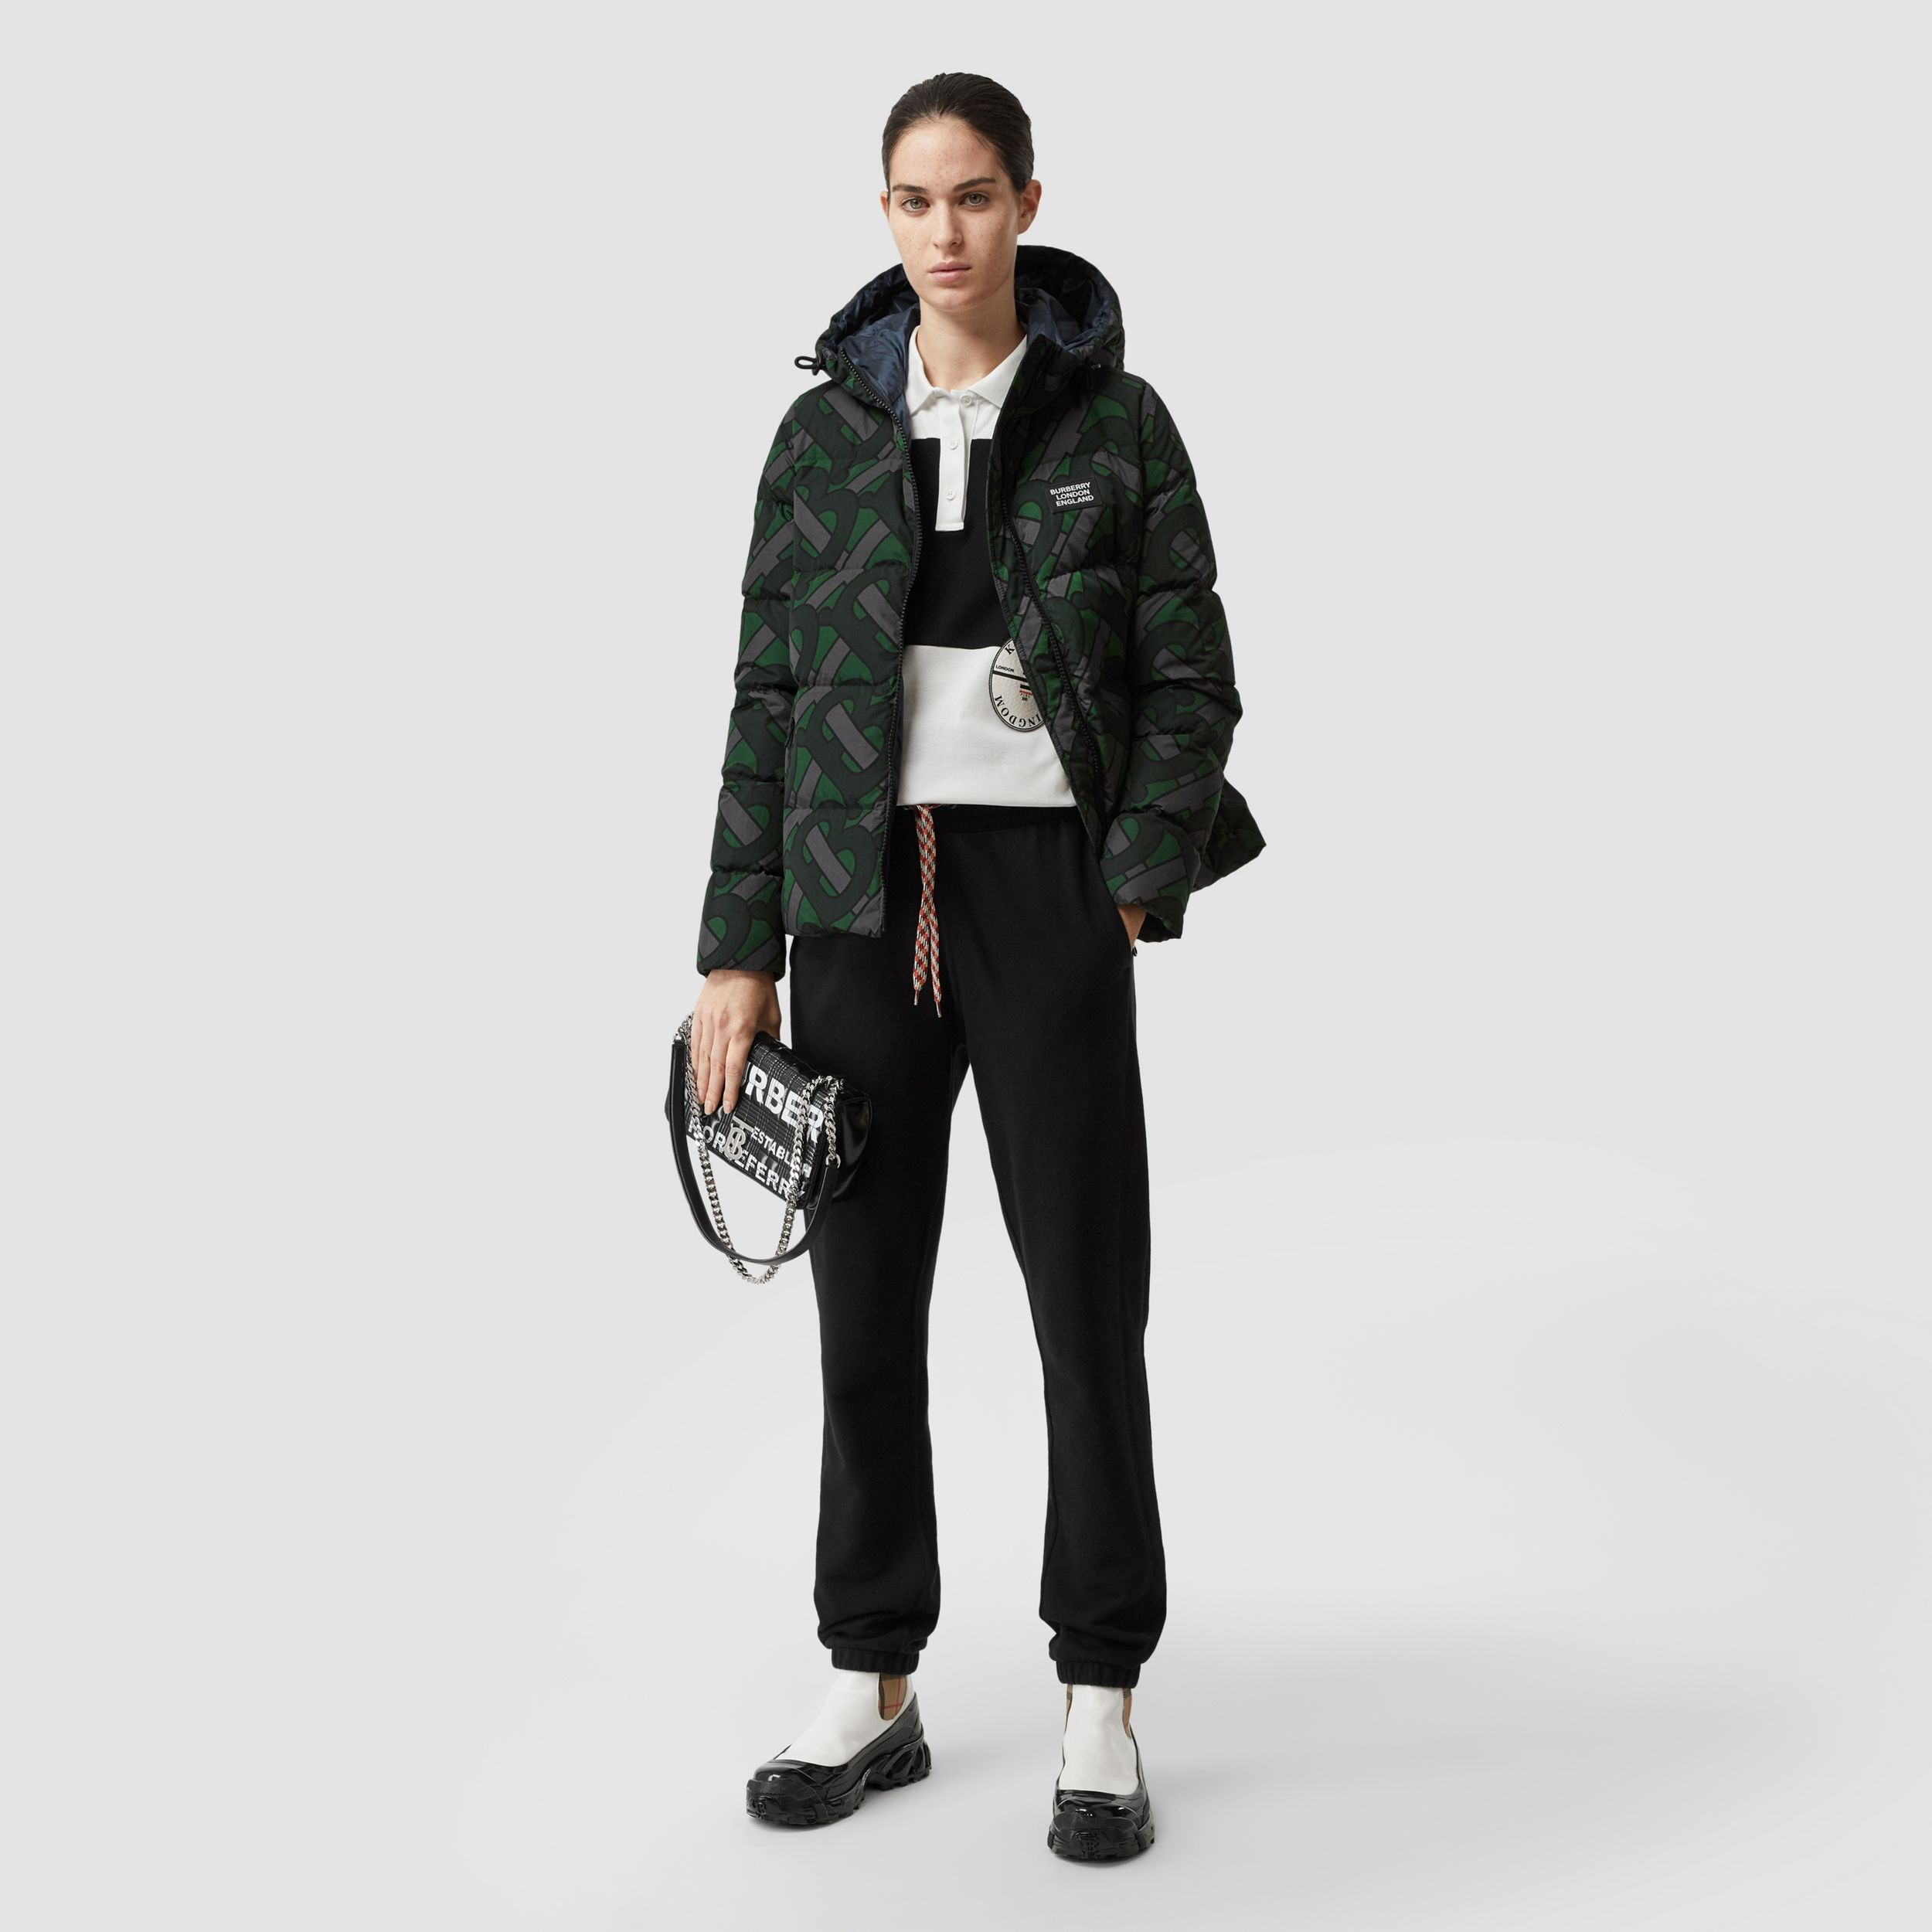 Monogram Print Puffer Jacket in Forest Green | Burberry - 3